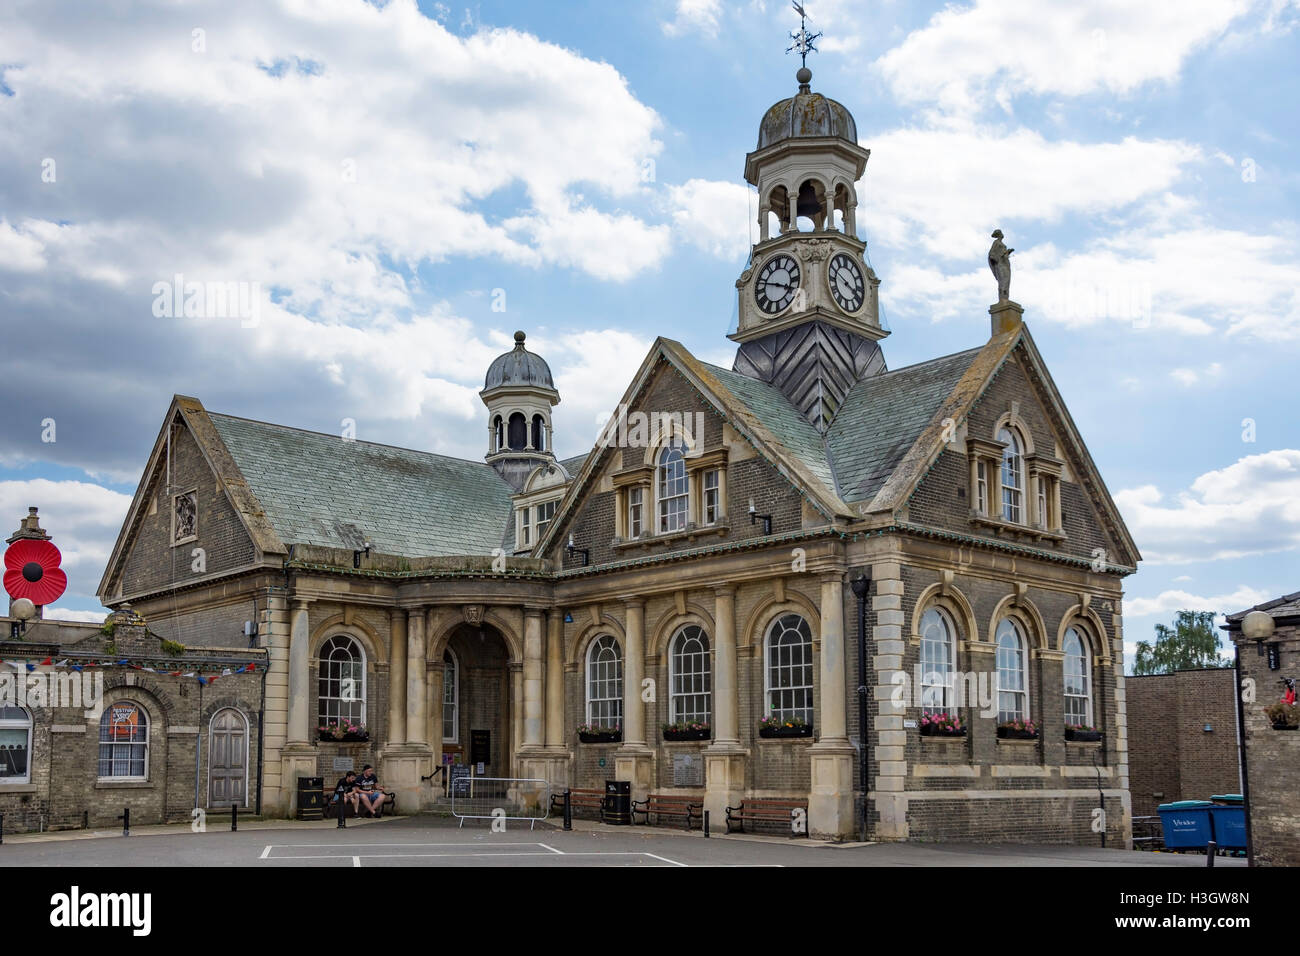 The Guildhall and Art Gallery, Market Place, Thetford, Norfolk, England, United Kingdom - Stock Image